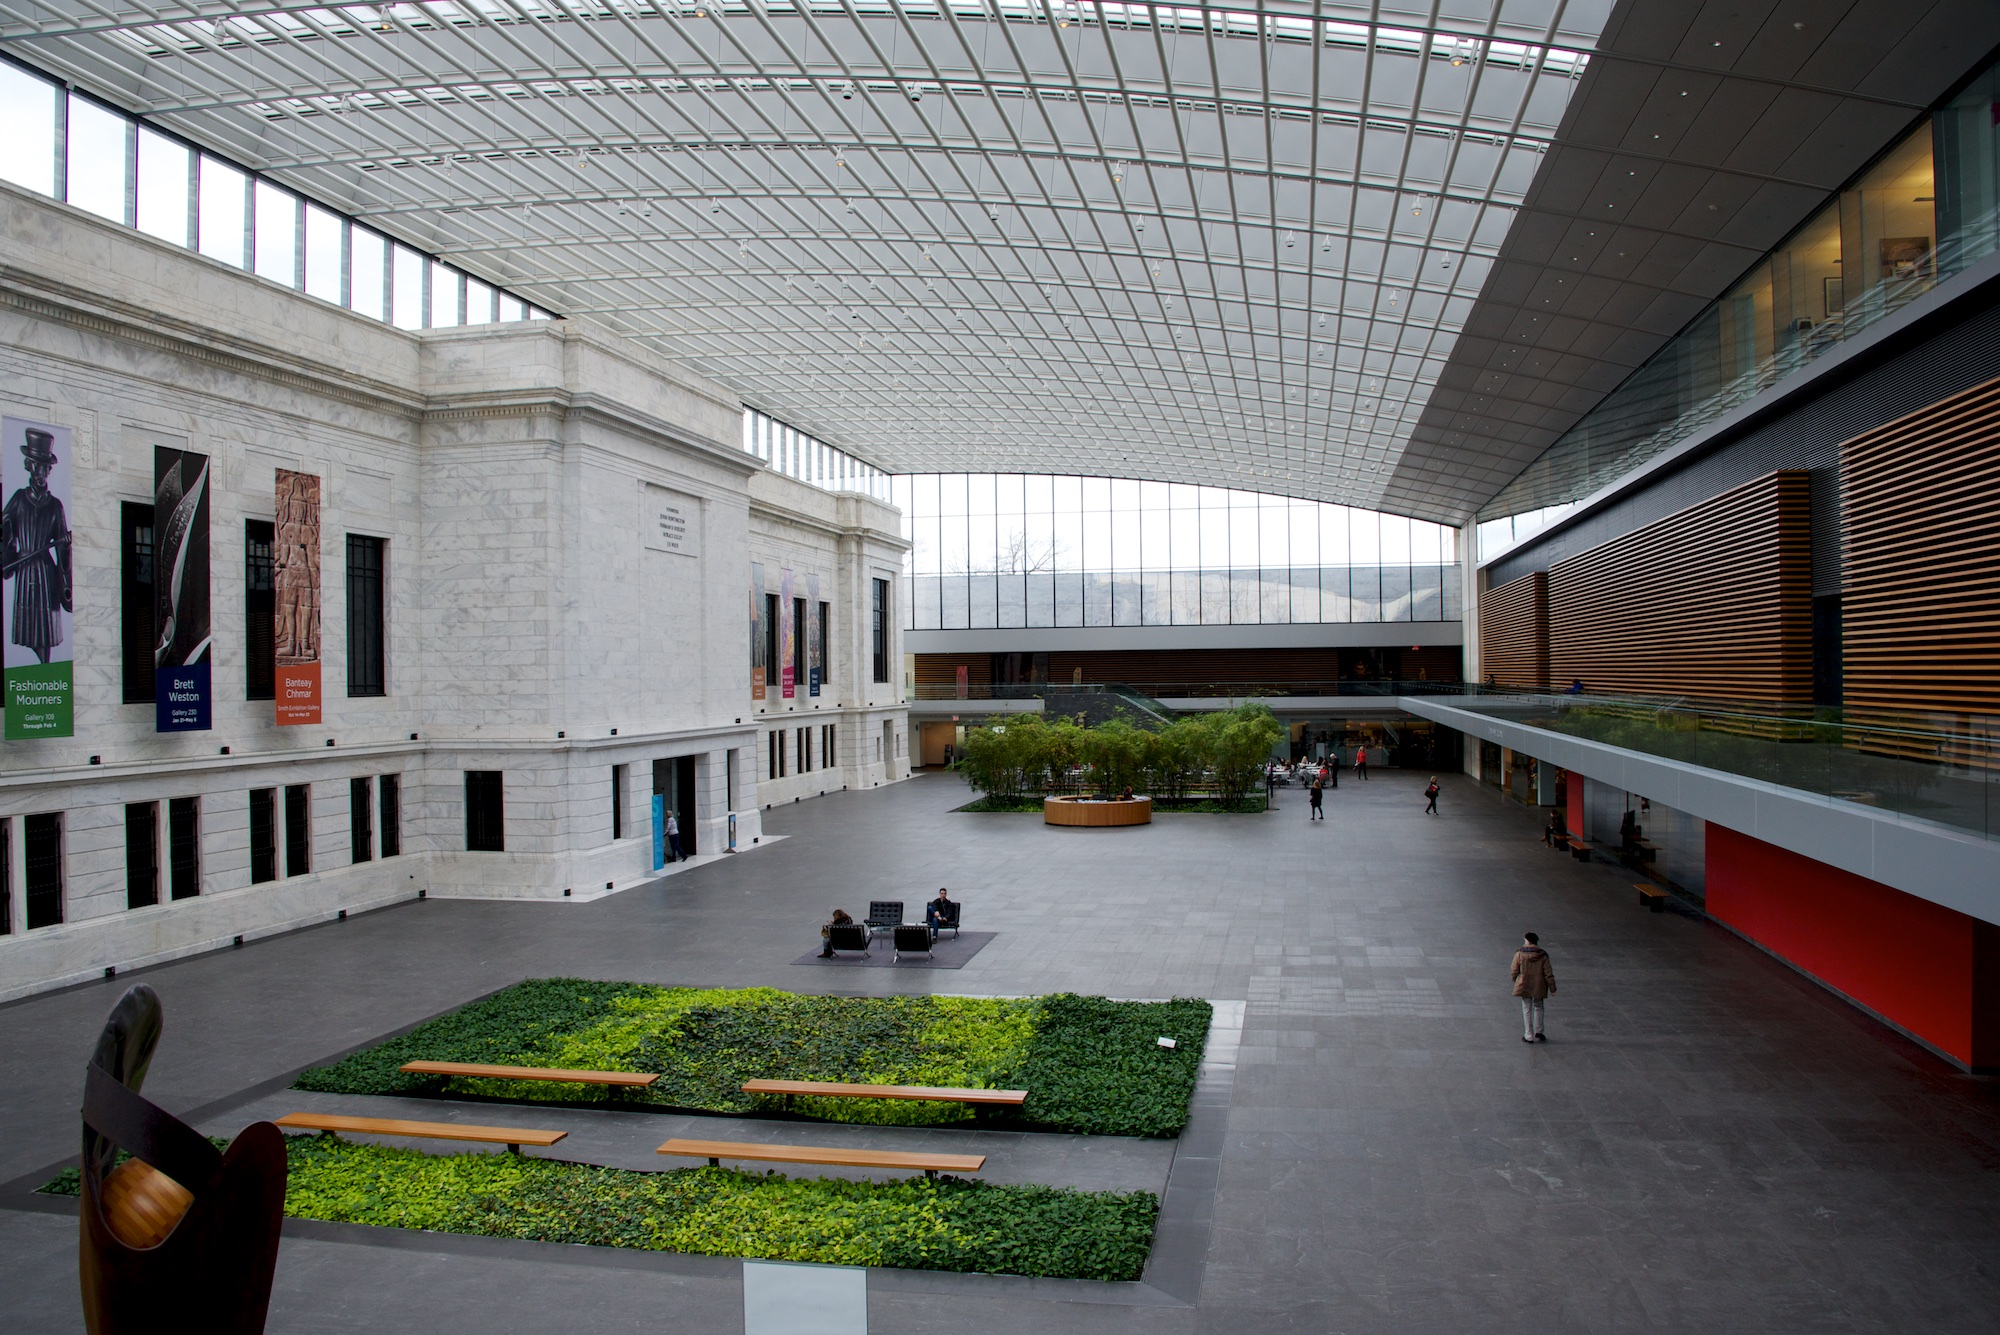 Atrium at Cleveland Museum of Art